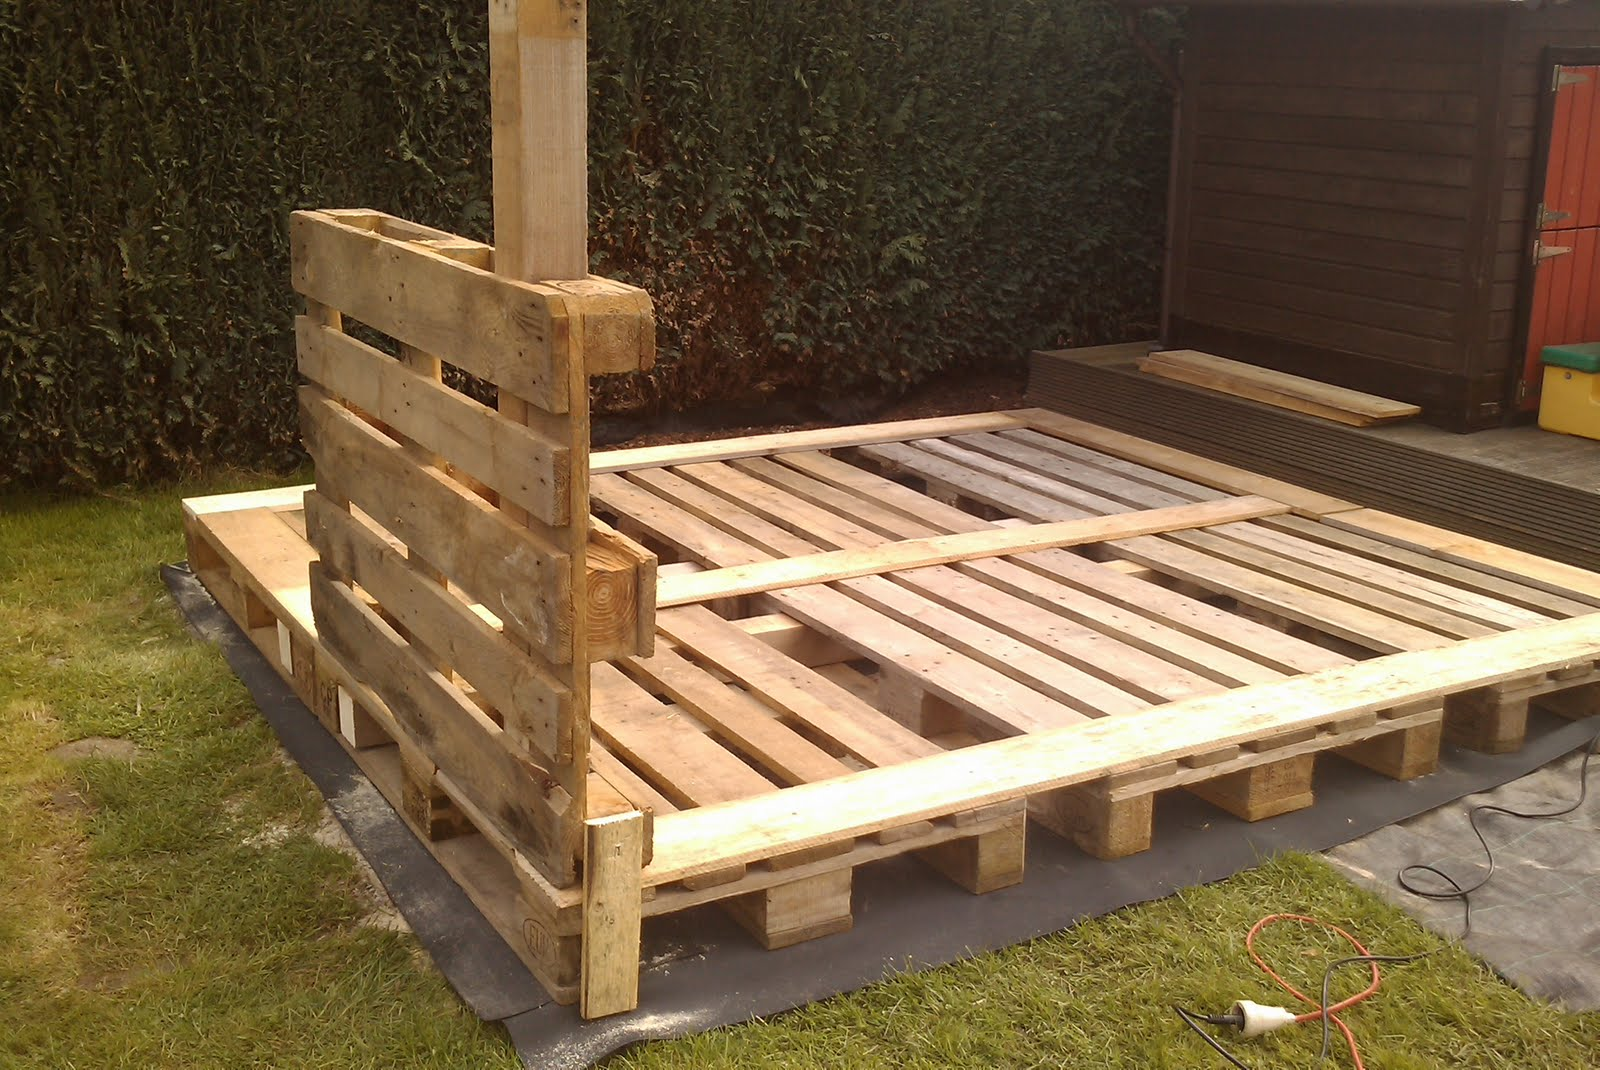 The Pallet Playhouse